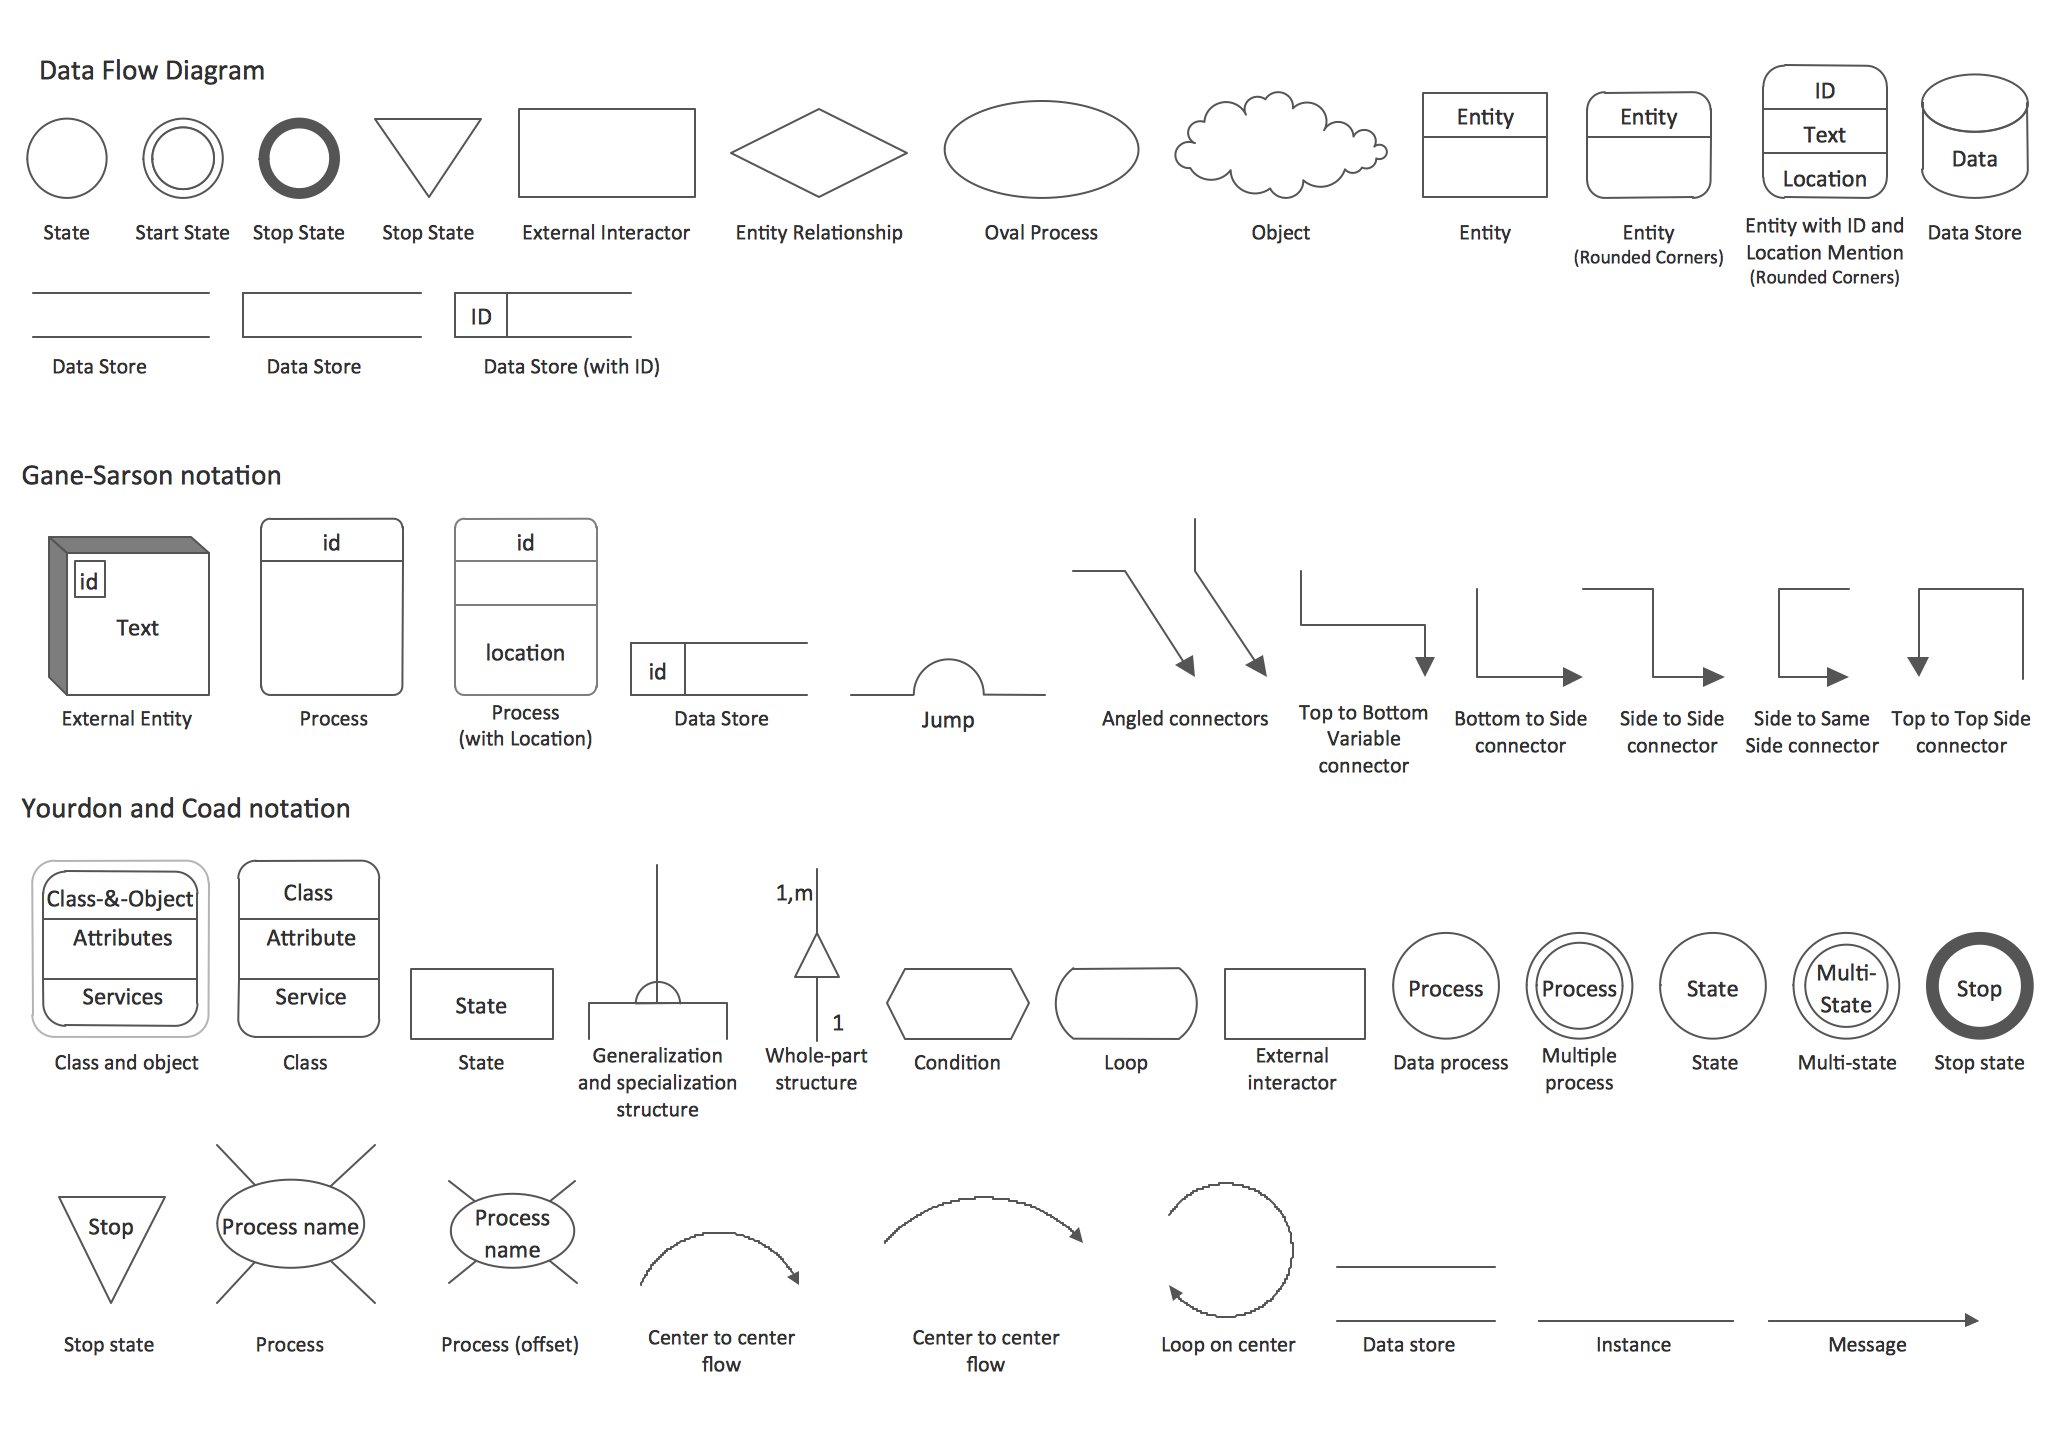 Example of dfd for online store data flow diagram dfd library design elements pooptronica